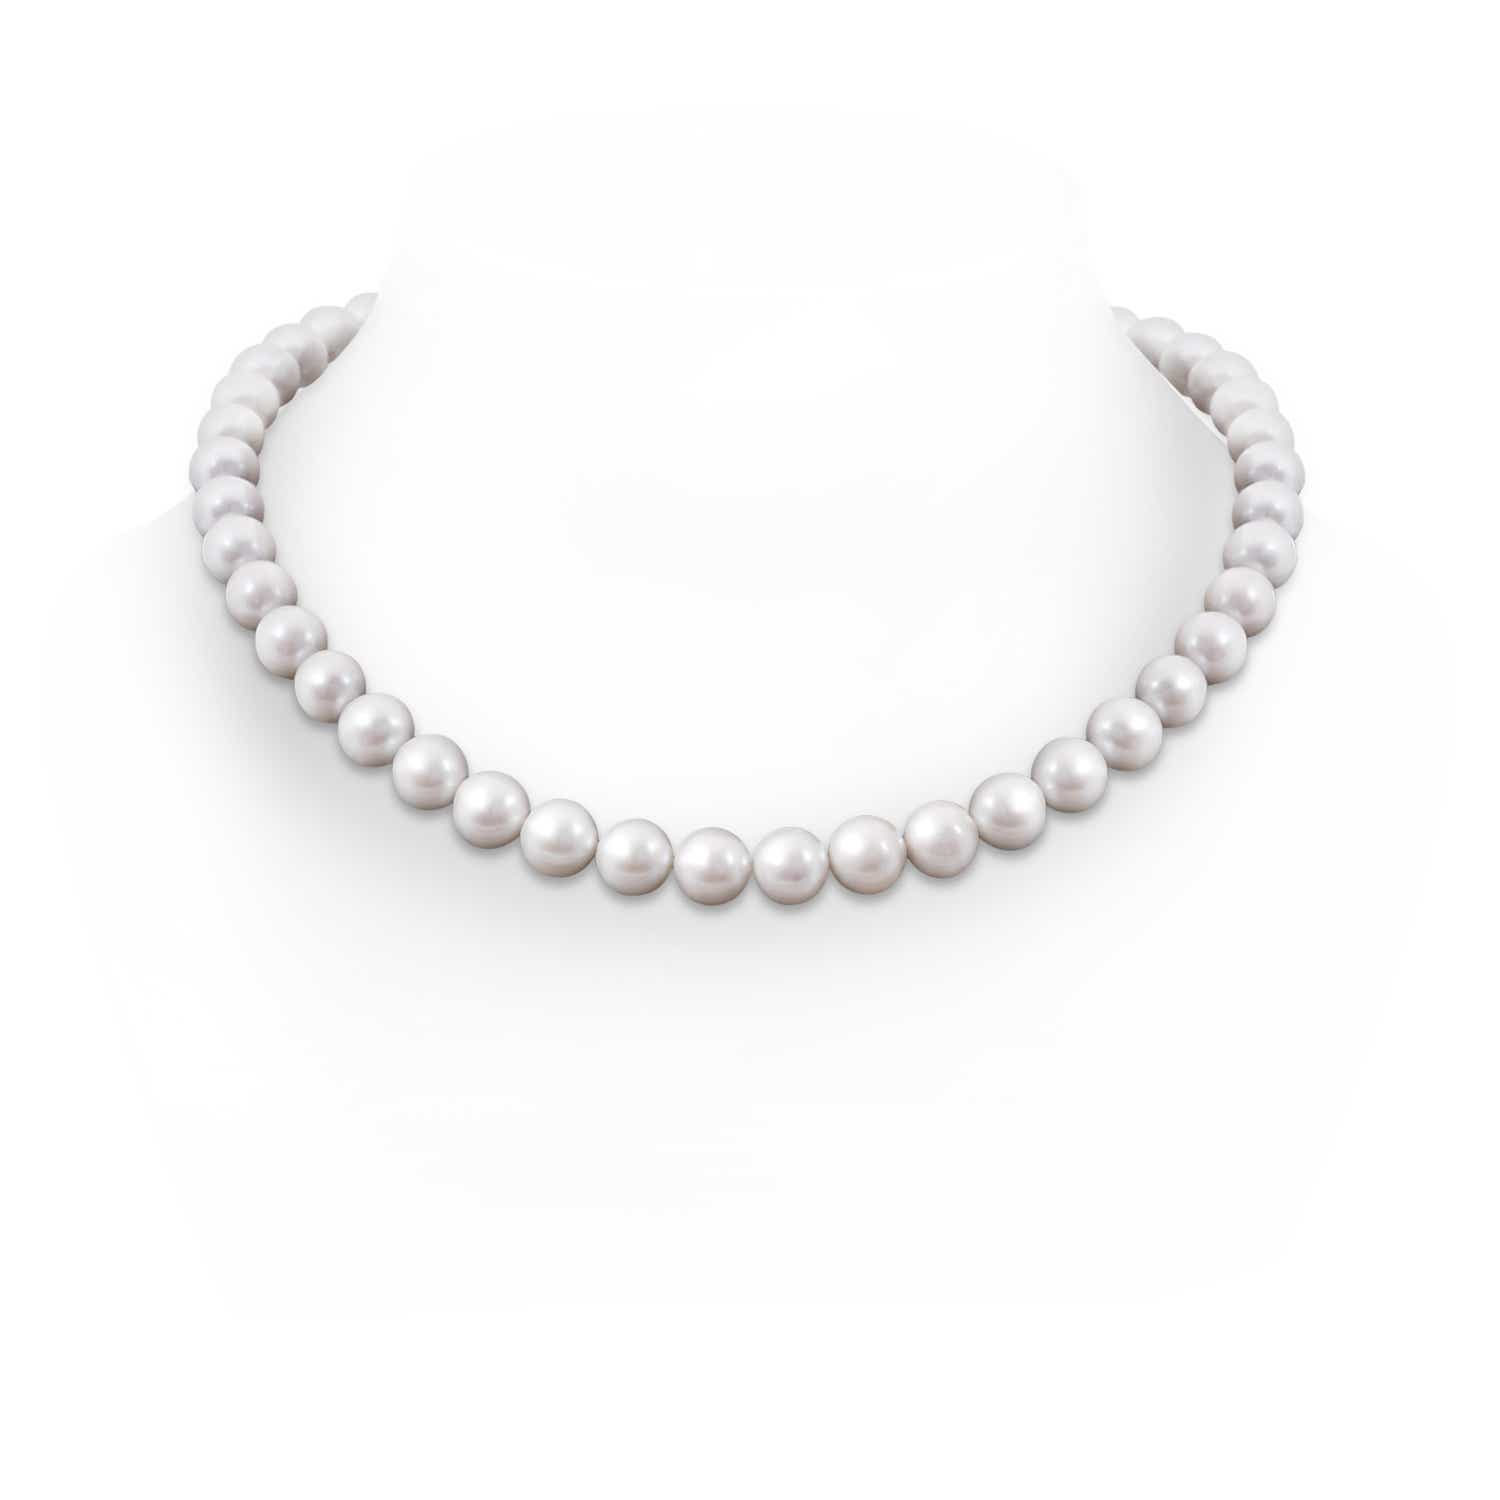 10 11mm, 20 Classic Freshwater Cultured Pearl Necklace